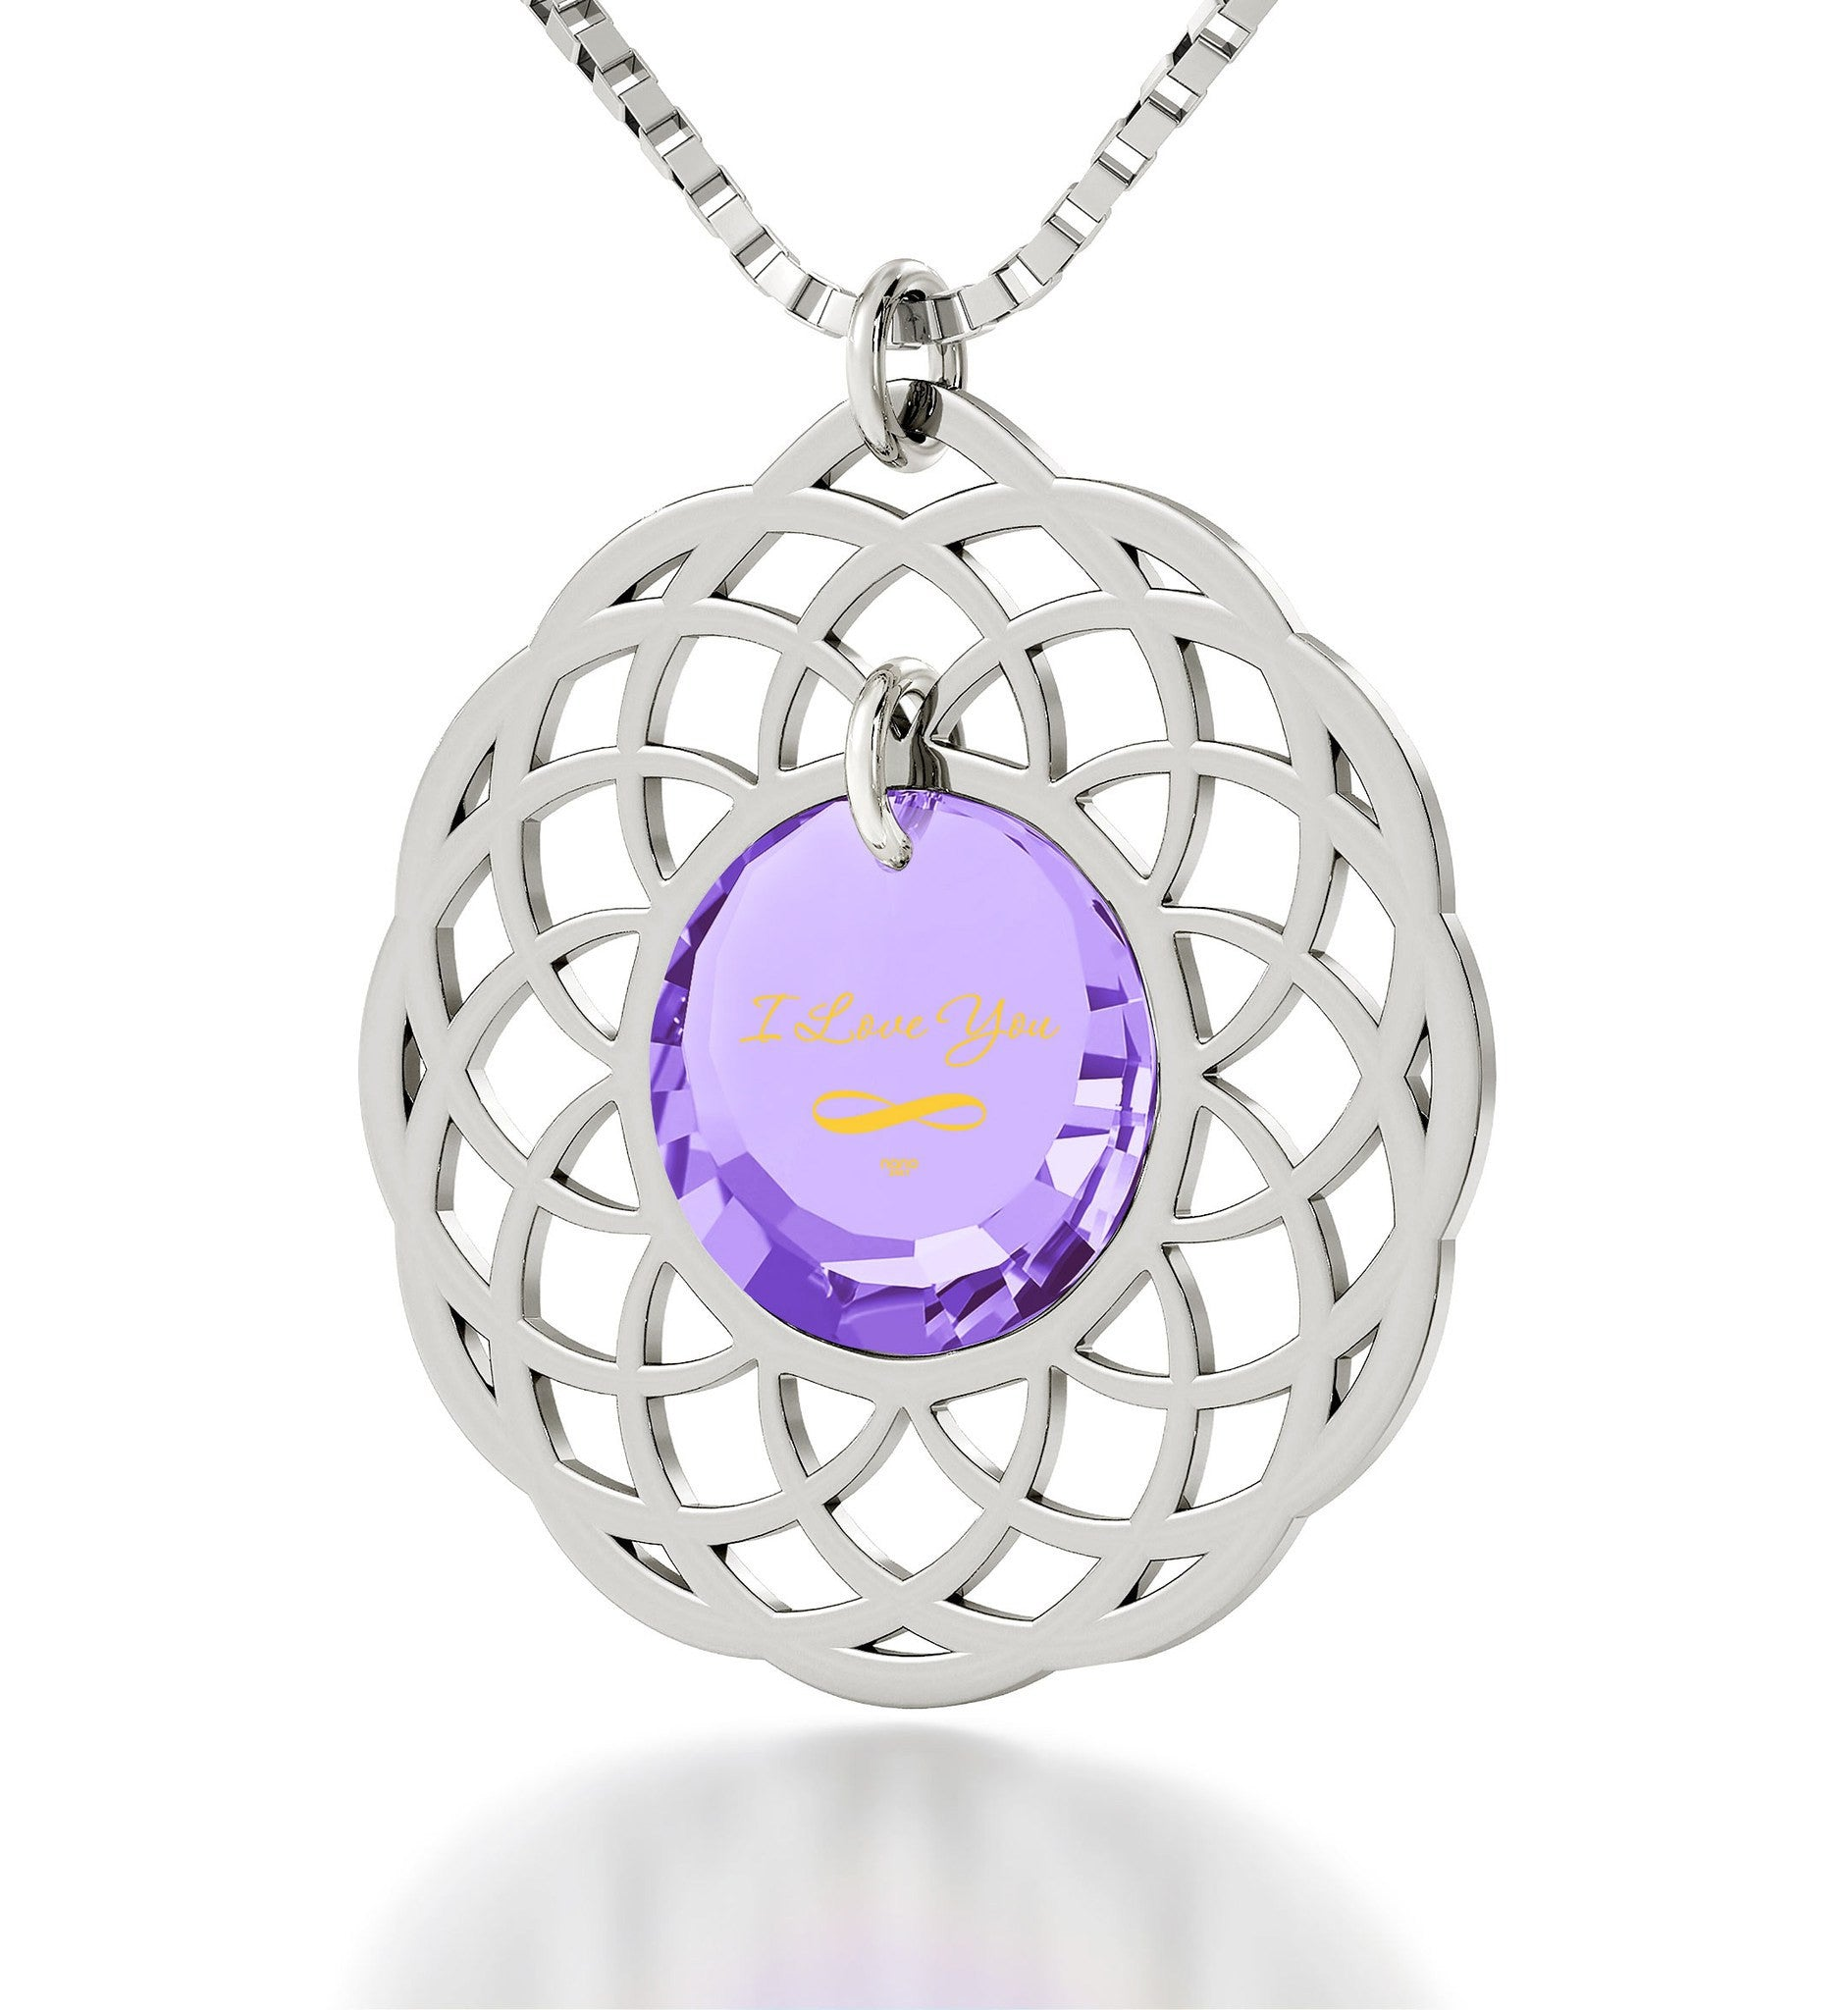 Necklaces for Your Girlfriend, Light Amethyst, 24k Imprint, Valentine Gift for Wife, Nano Jewelry